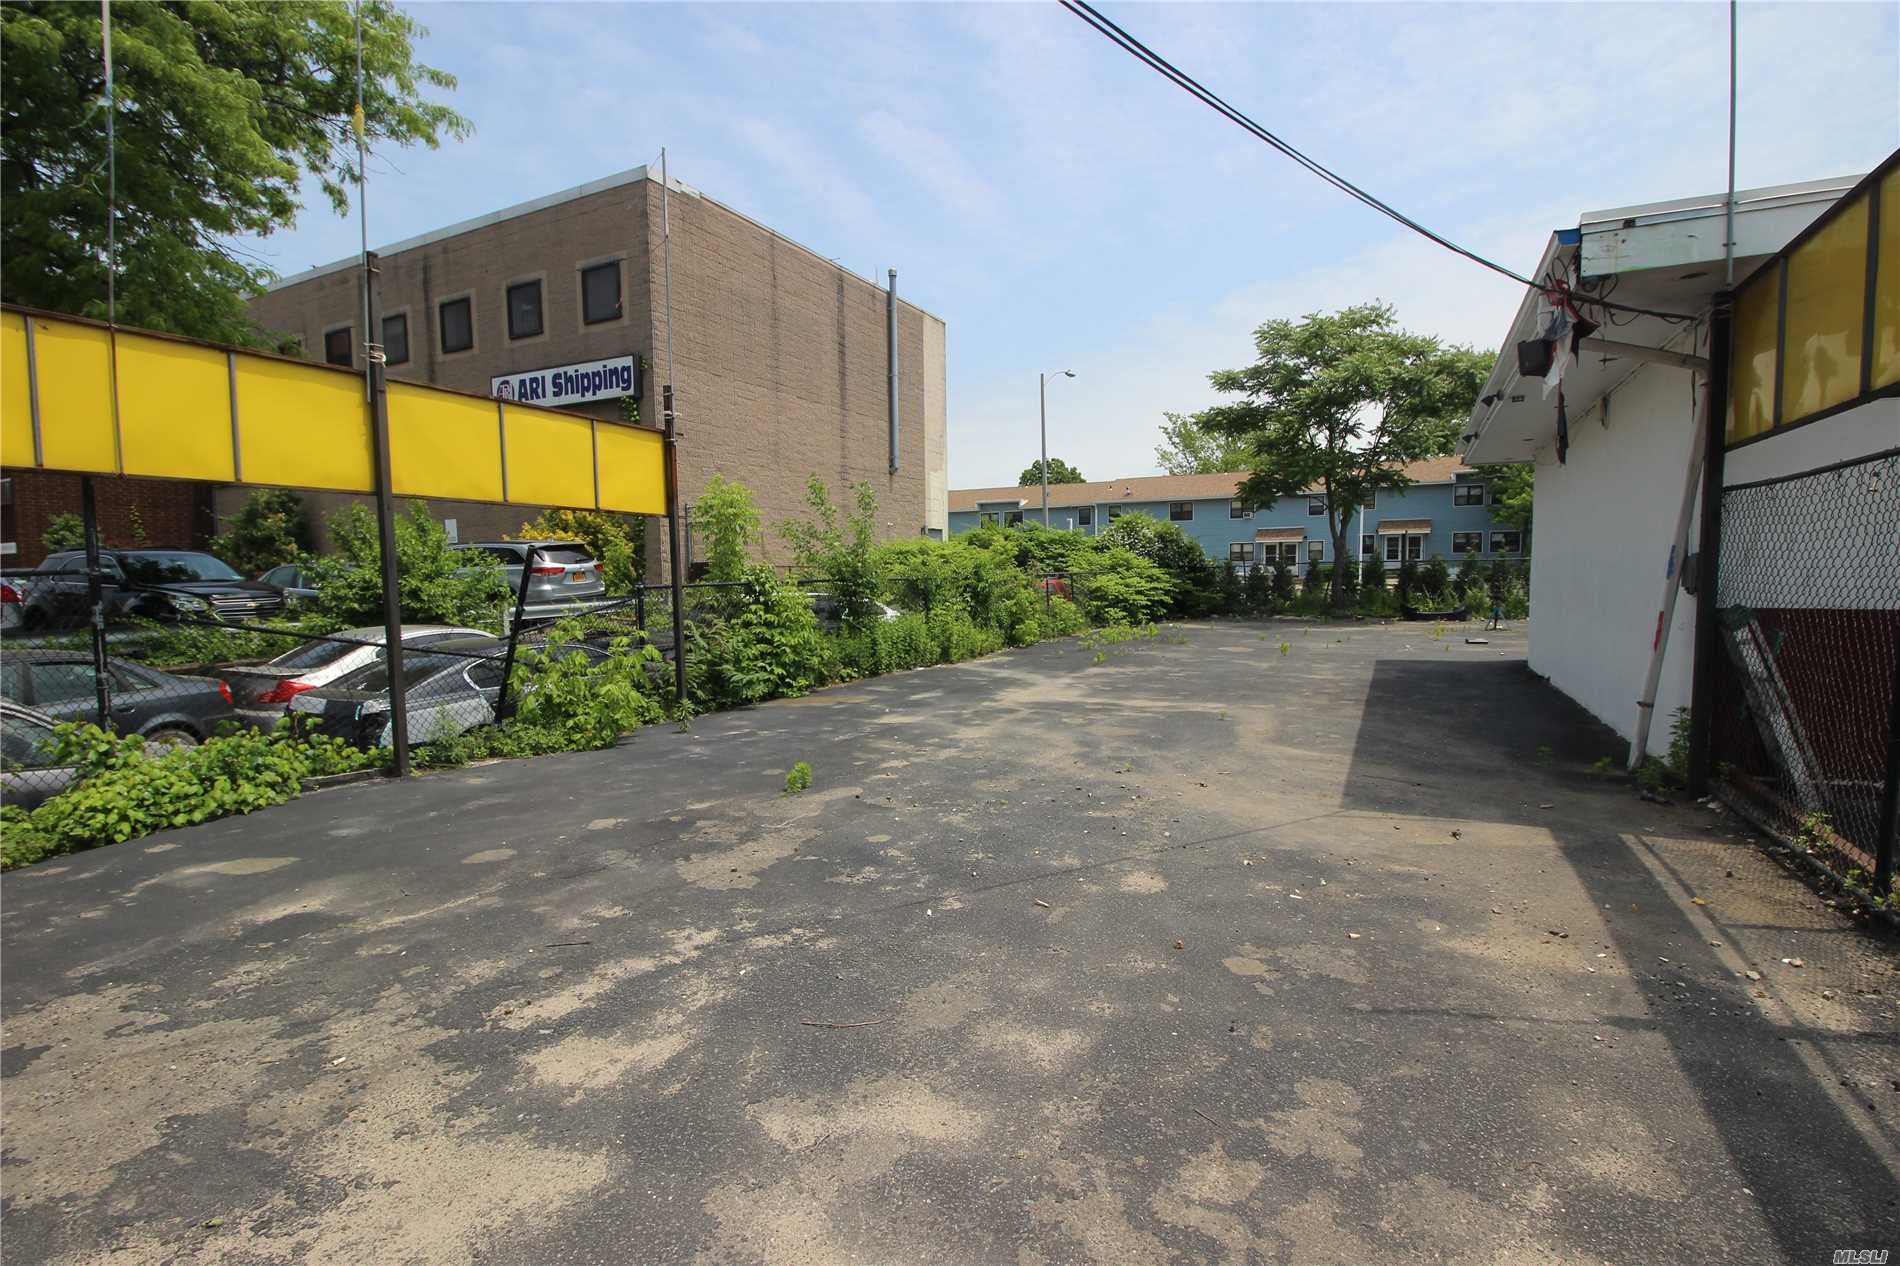 Used Car Lot With Adjoining Building For Lease. Building Can Be Used For Car Display, Service Bay, Or Get Ready, And Also Has Spacious Office. Exterior Display Up To 20 Cars. Lot Is Paved, Fenced, And Illuminated. Located On Main Boulevard With Heavy Traffic On The Queens/Nassau Border, Close To Jfk Airport. $2, 995 Per Month, Includes Base Year Taxes.